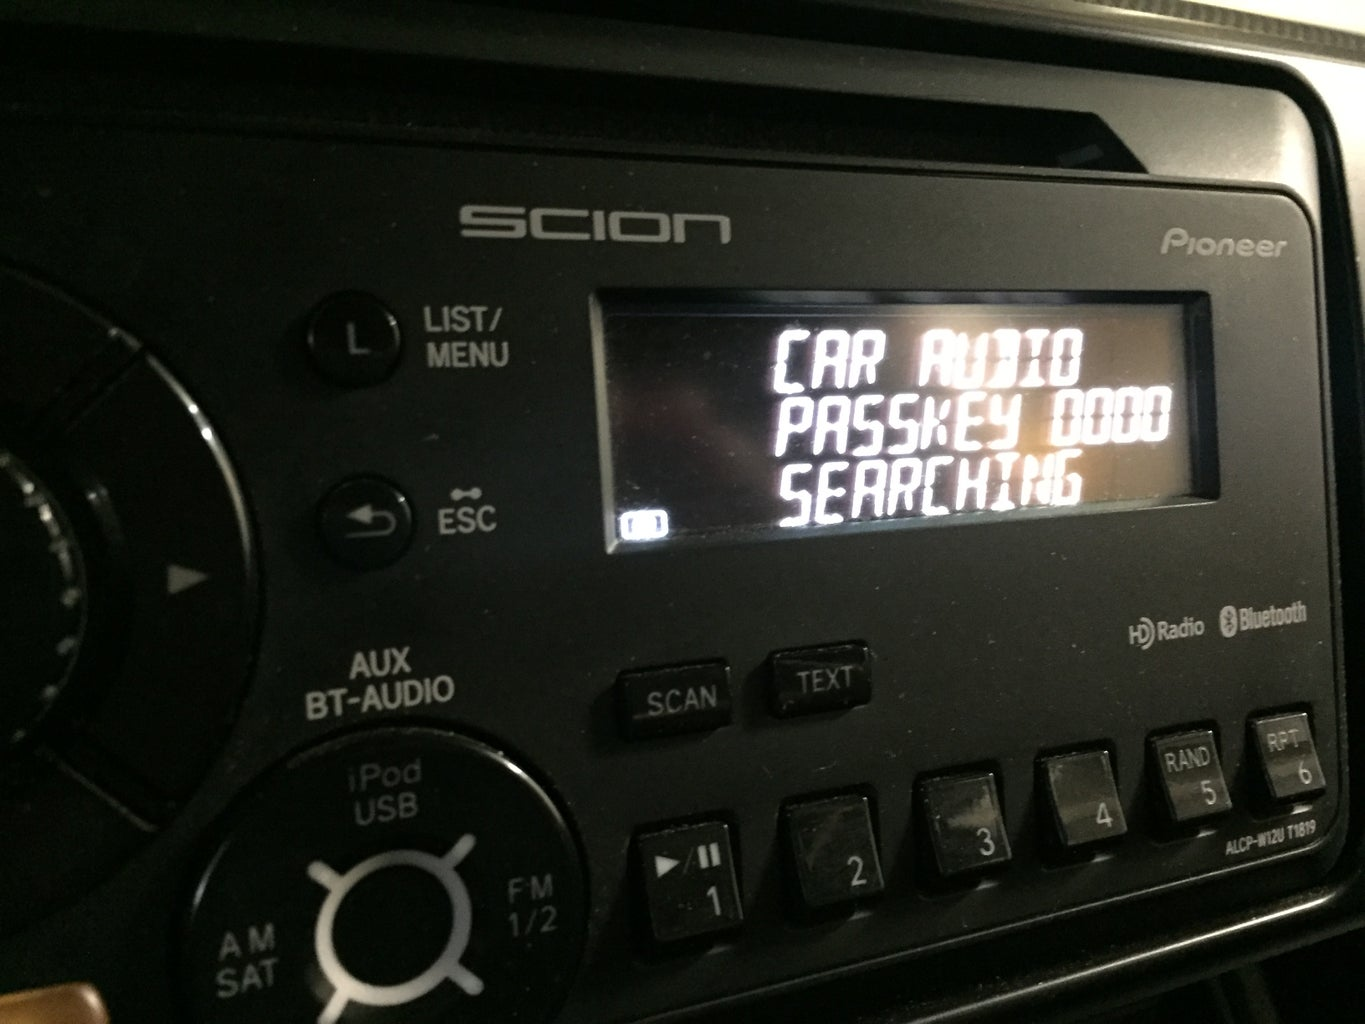 Connect the Dot to Your Stereo Via Bluetooth or 3.5